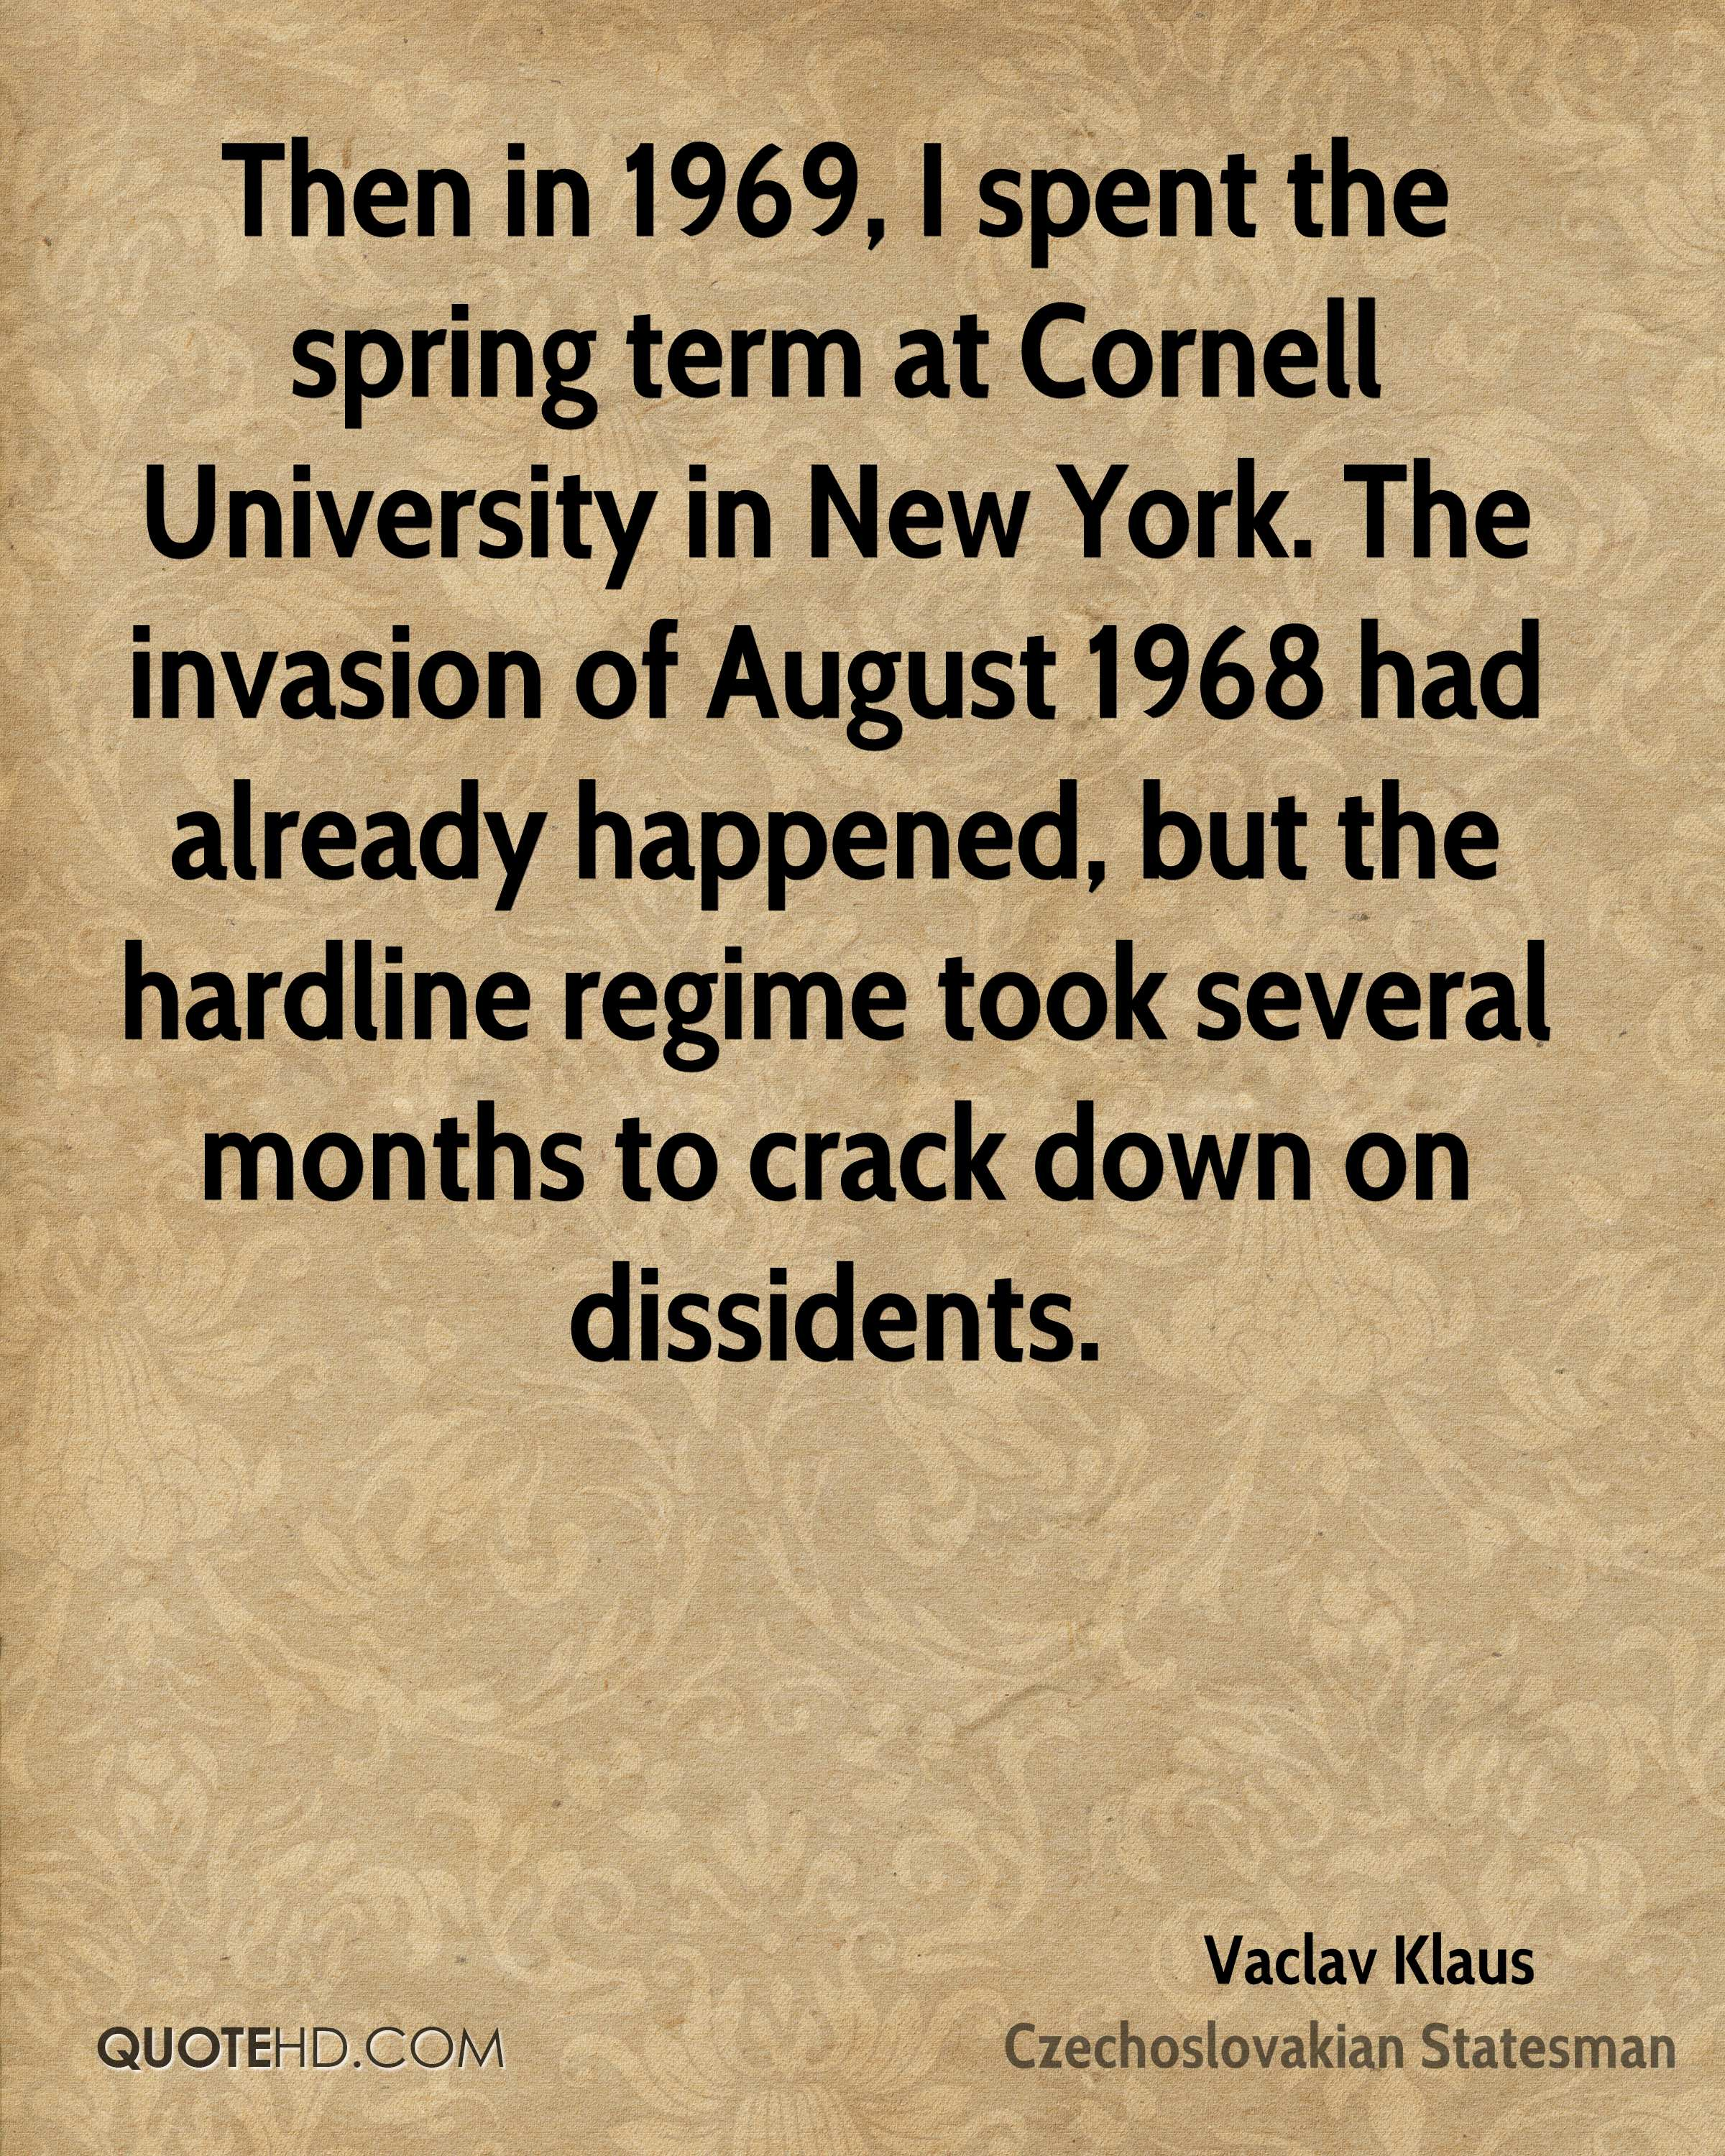 Then in 1969, I spent the spring term at Cornell University in New York. The invasion of August 1968 had already happened, but the hardline regime took several months to crack down on dissidents.